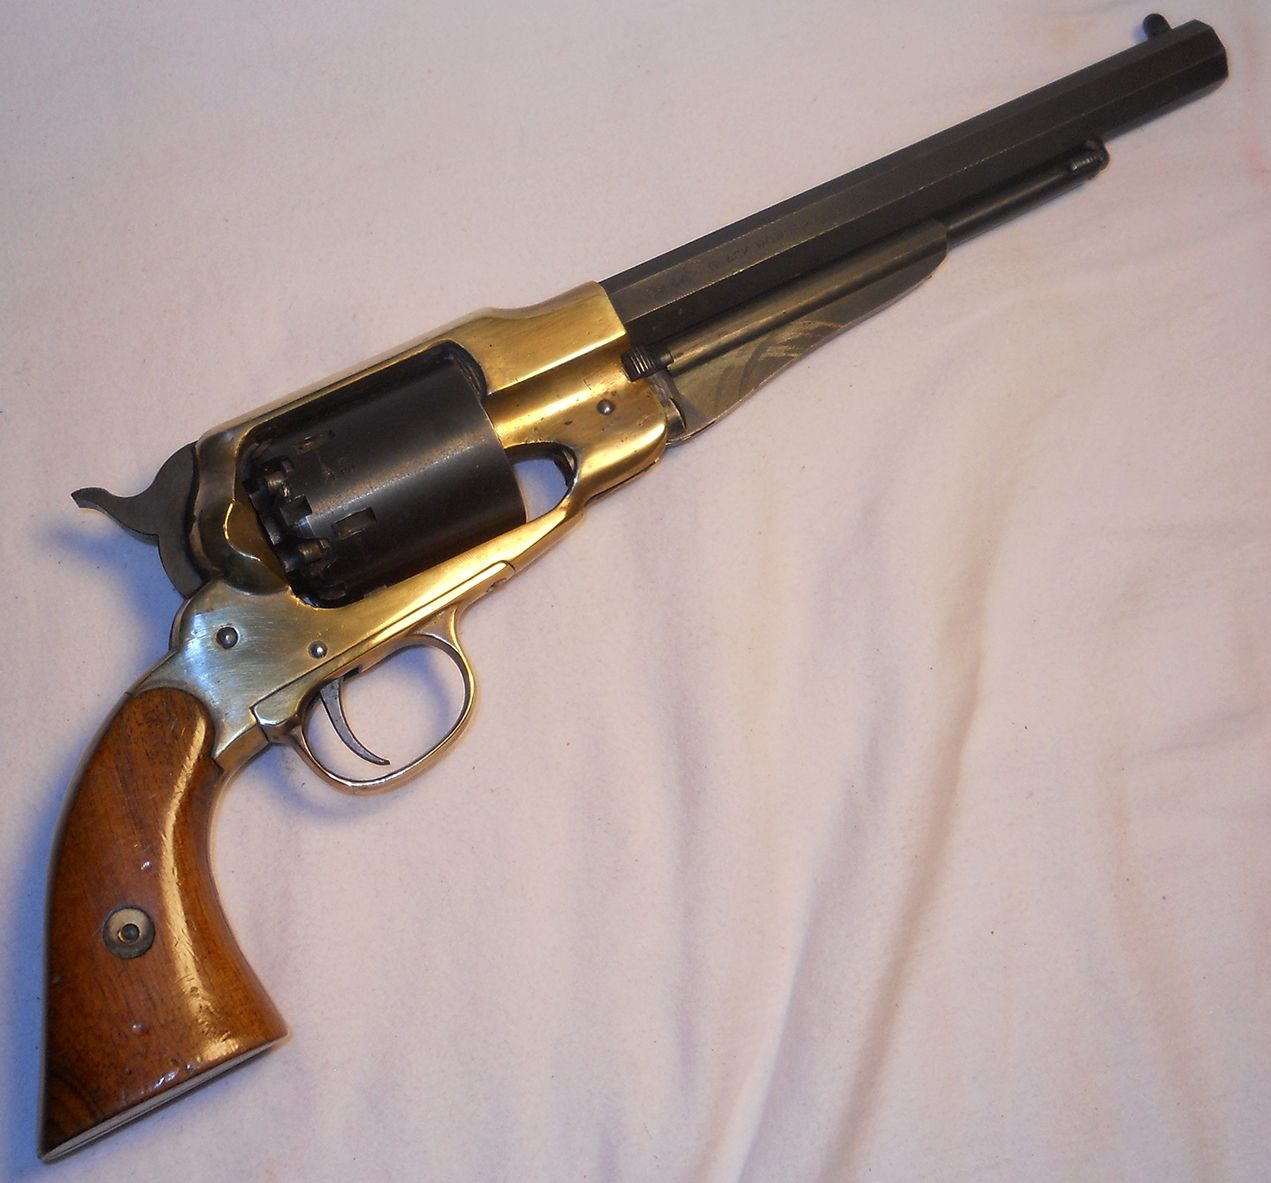 Pin by Christopher Clark on pistols and revolvers   Guns, Hand guns